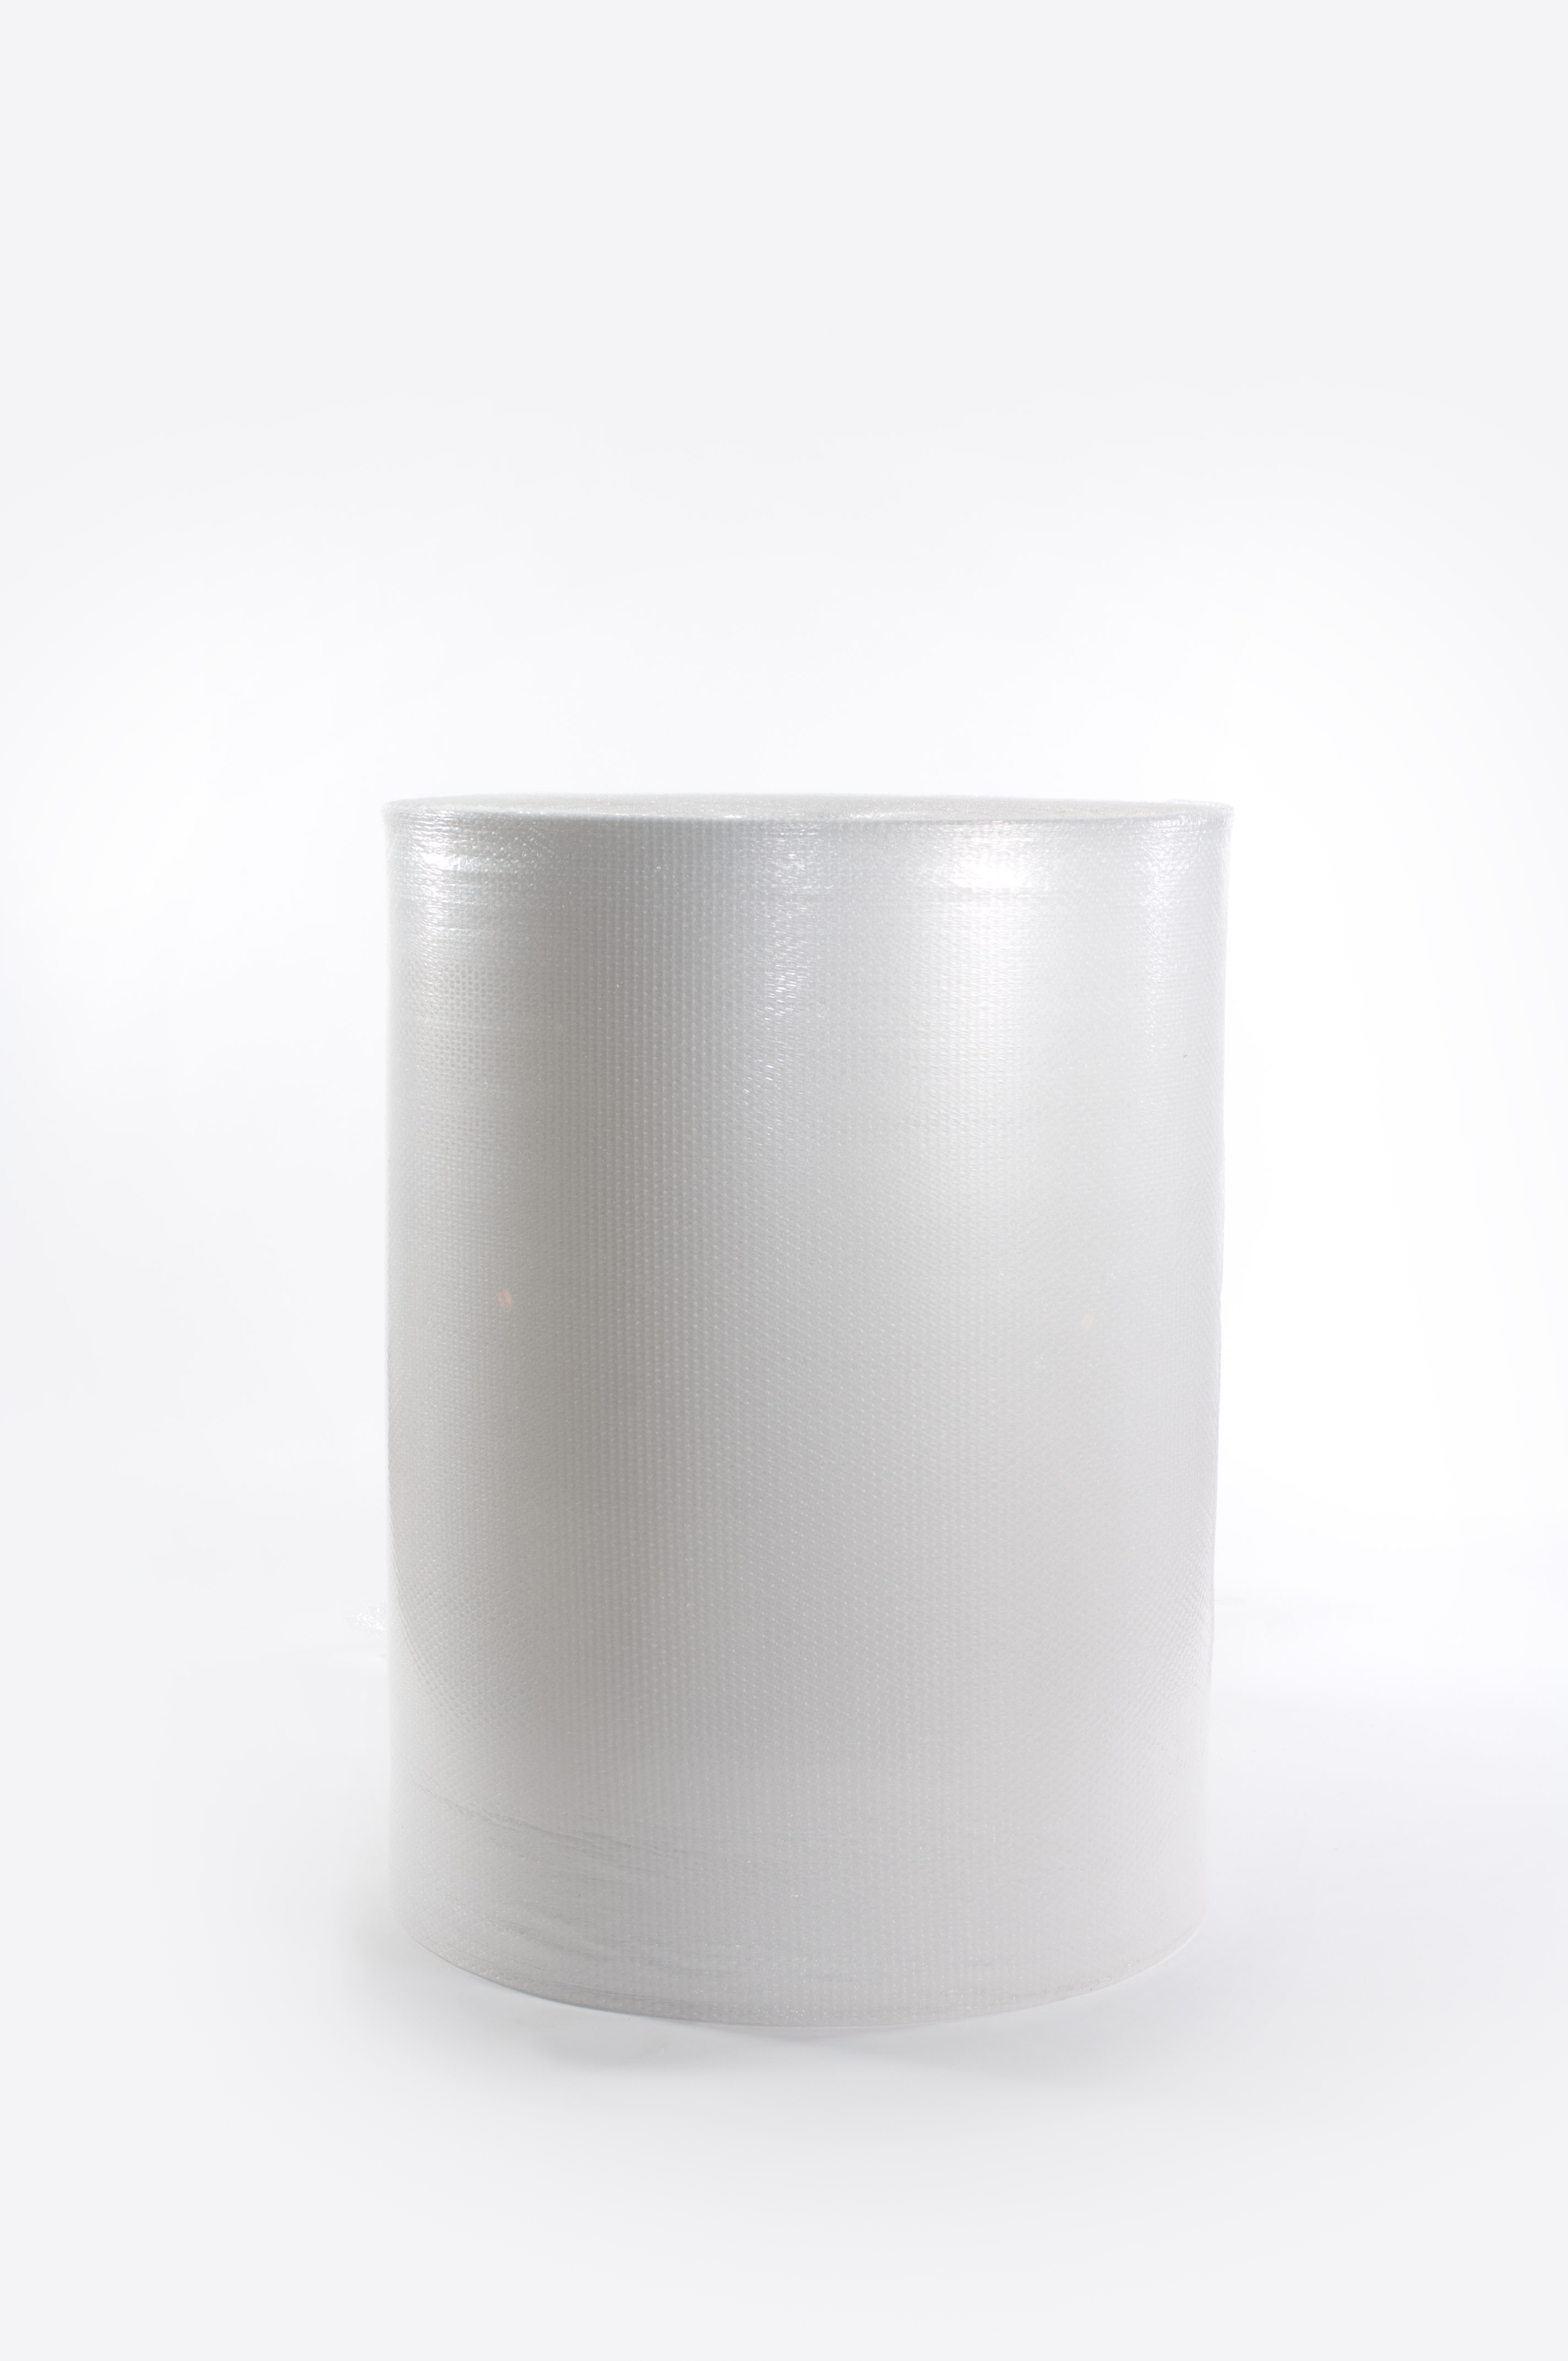 "24"" x 250' Large Bubble Perforated @12"" 2 Rolls/Bundle"